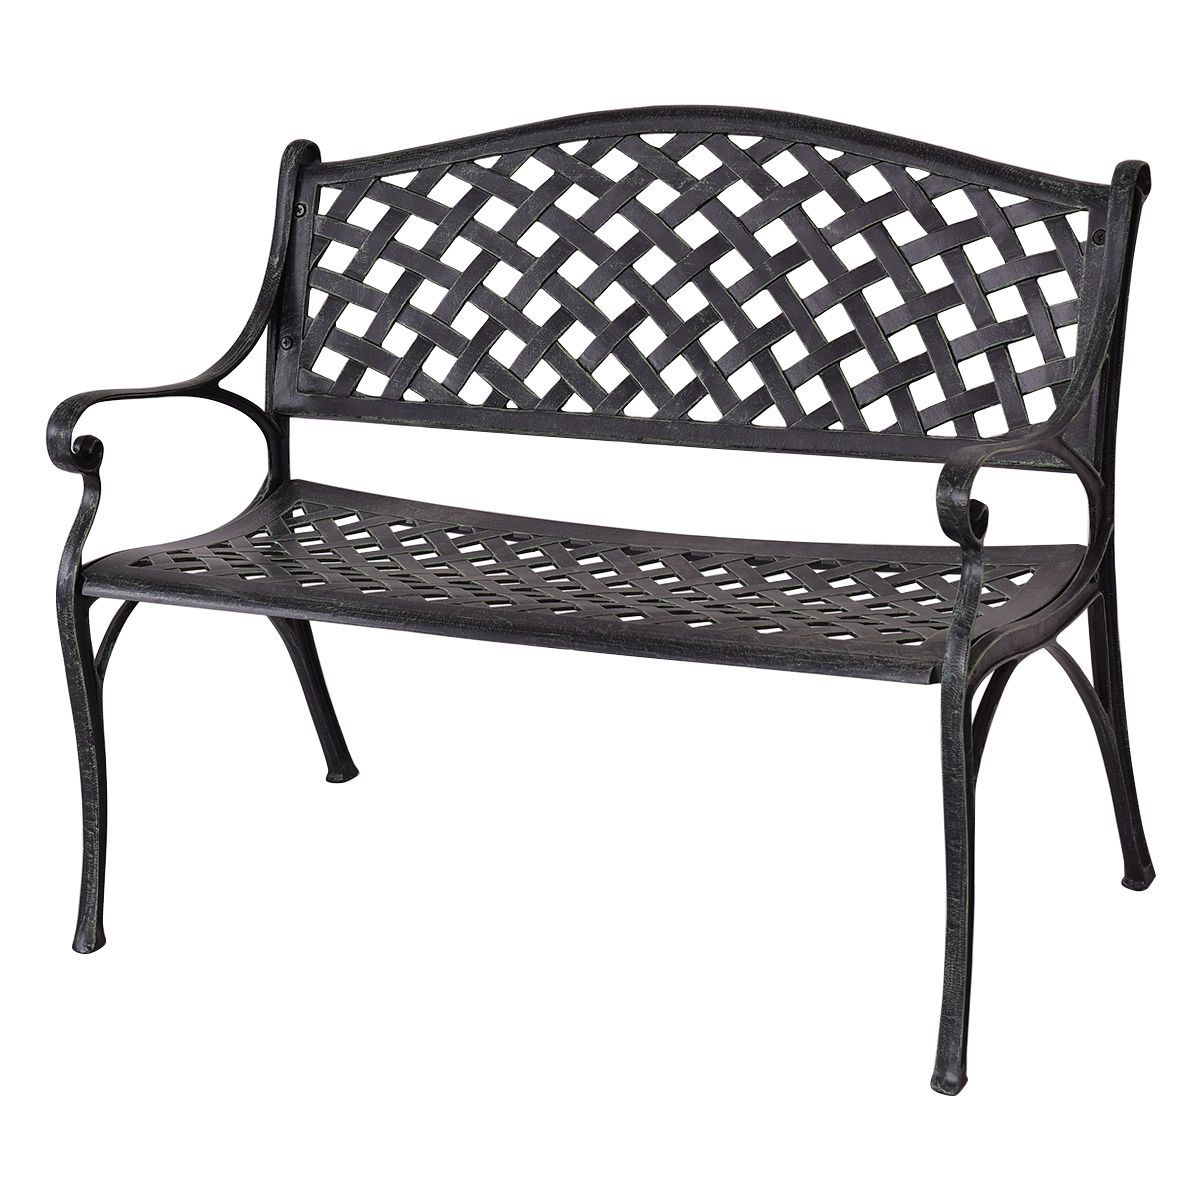 Outdoor Antique Aluminum Metal Frame Patio Bench